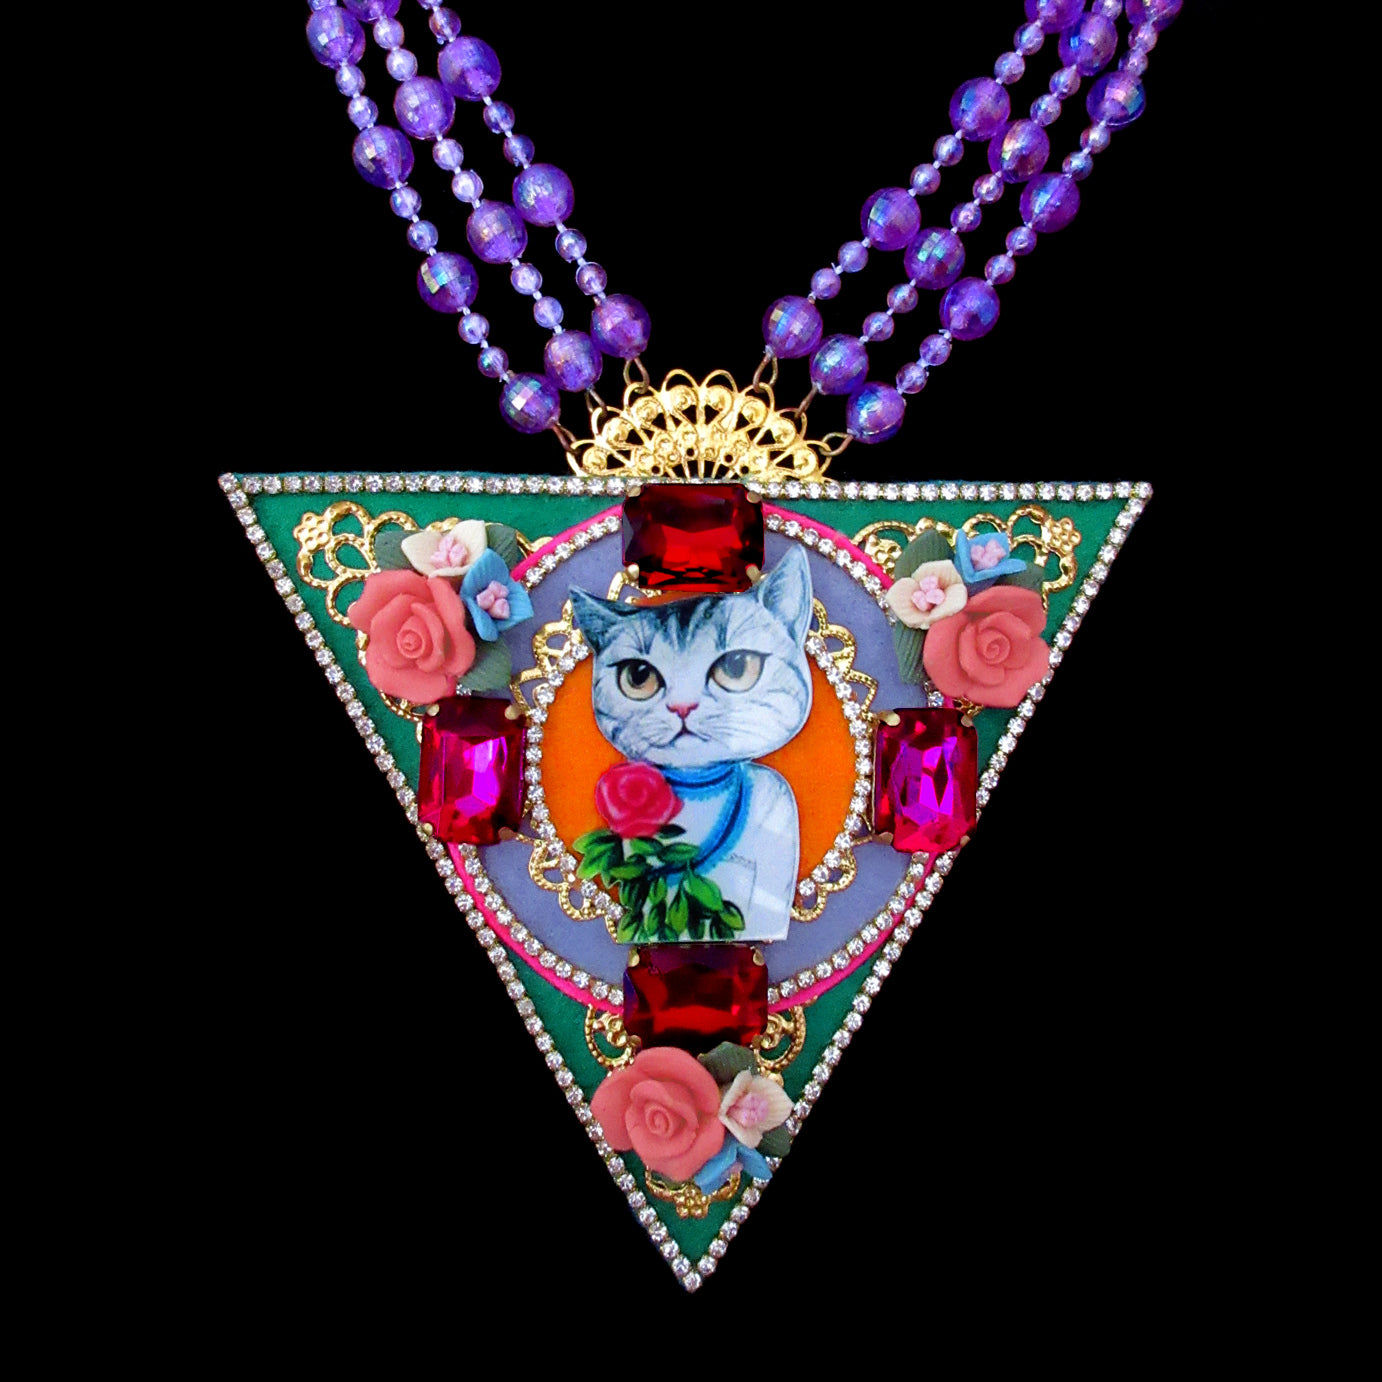 mouchkine jewelry bijoux triangle necklace with lady cat, ceramic flowers and swarovsky crystals. A bohochic jewel for a unique style.